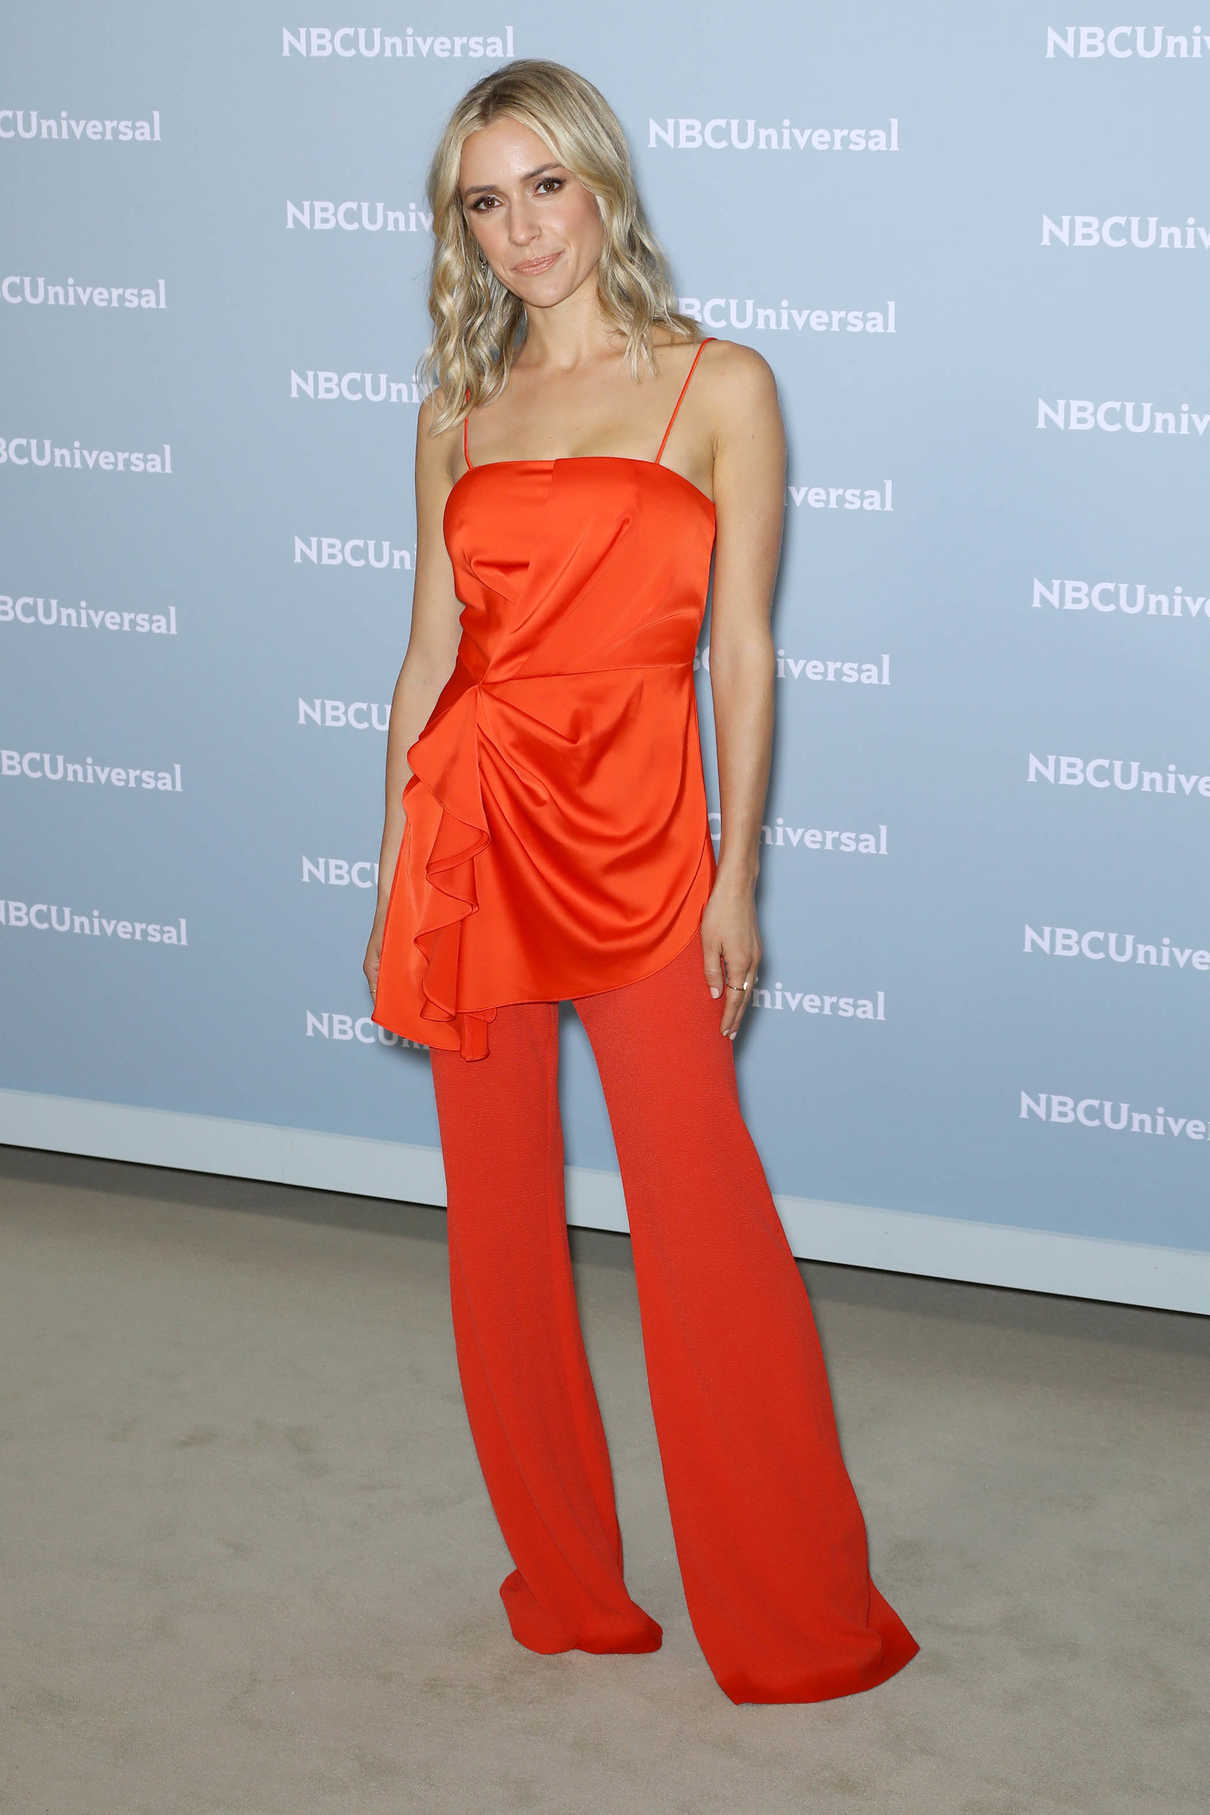 Kristin Cavallari at NBCUniversal Upfront Presentation in New York City 05/14/2018-3